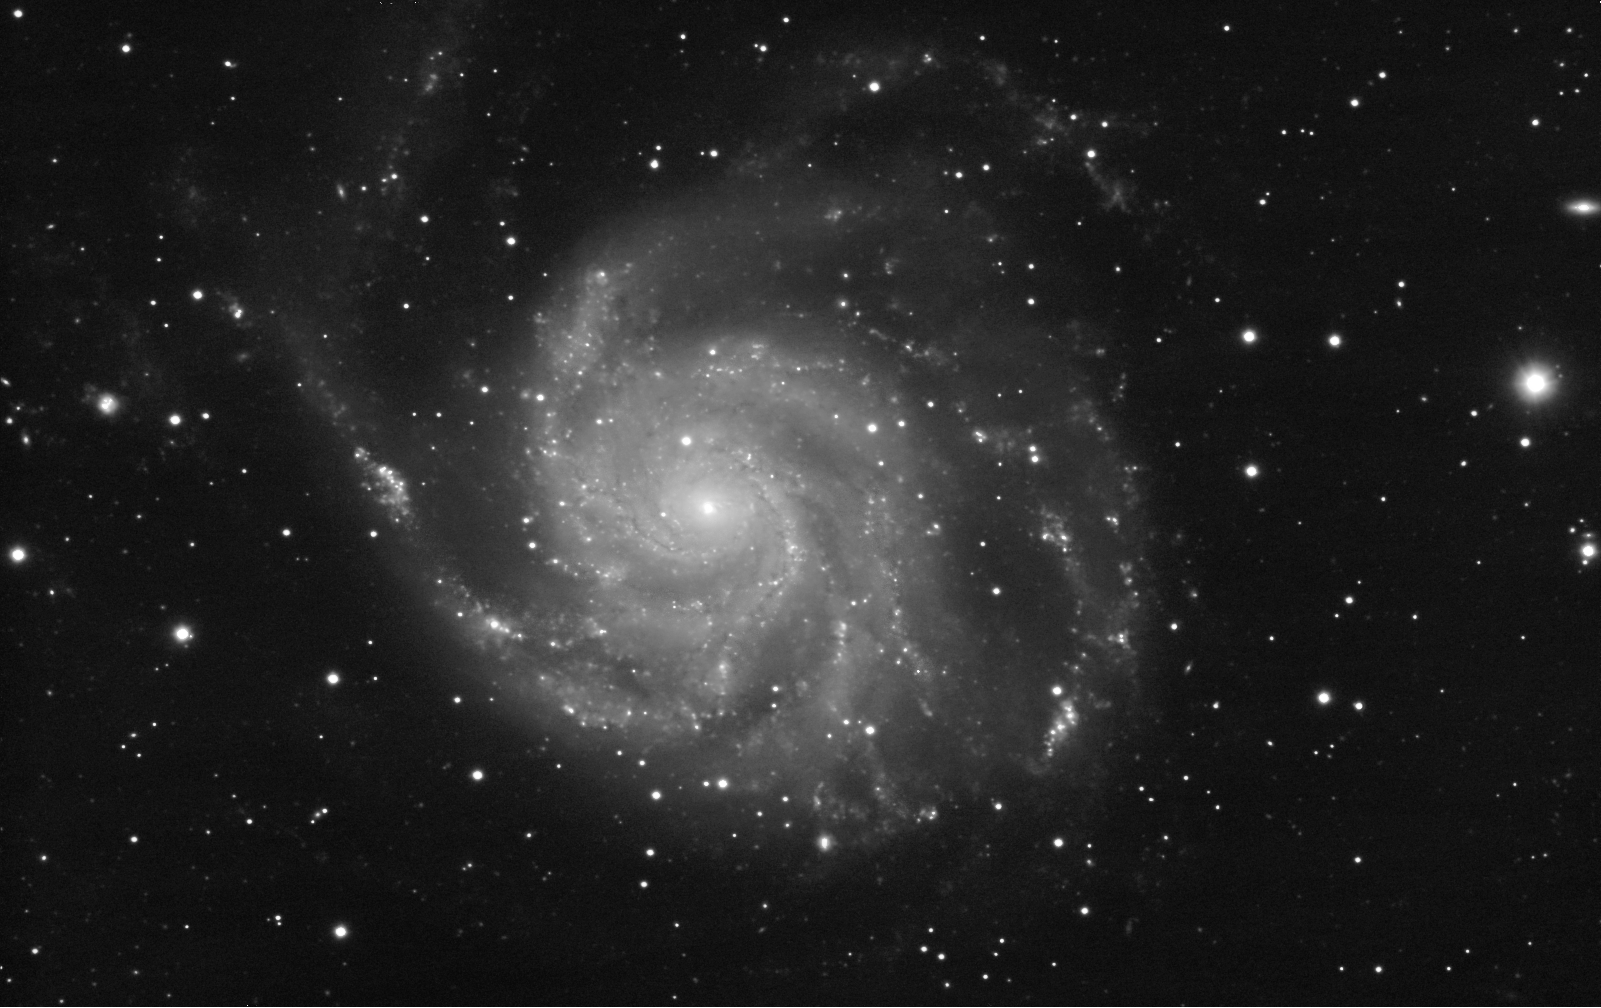 5ed37f98f054b_messier101nb.png.17aaaa233ec0aeefd8f5a0dbc4fa904a.png